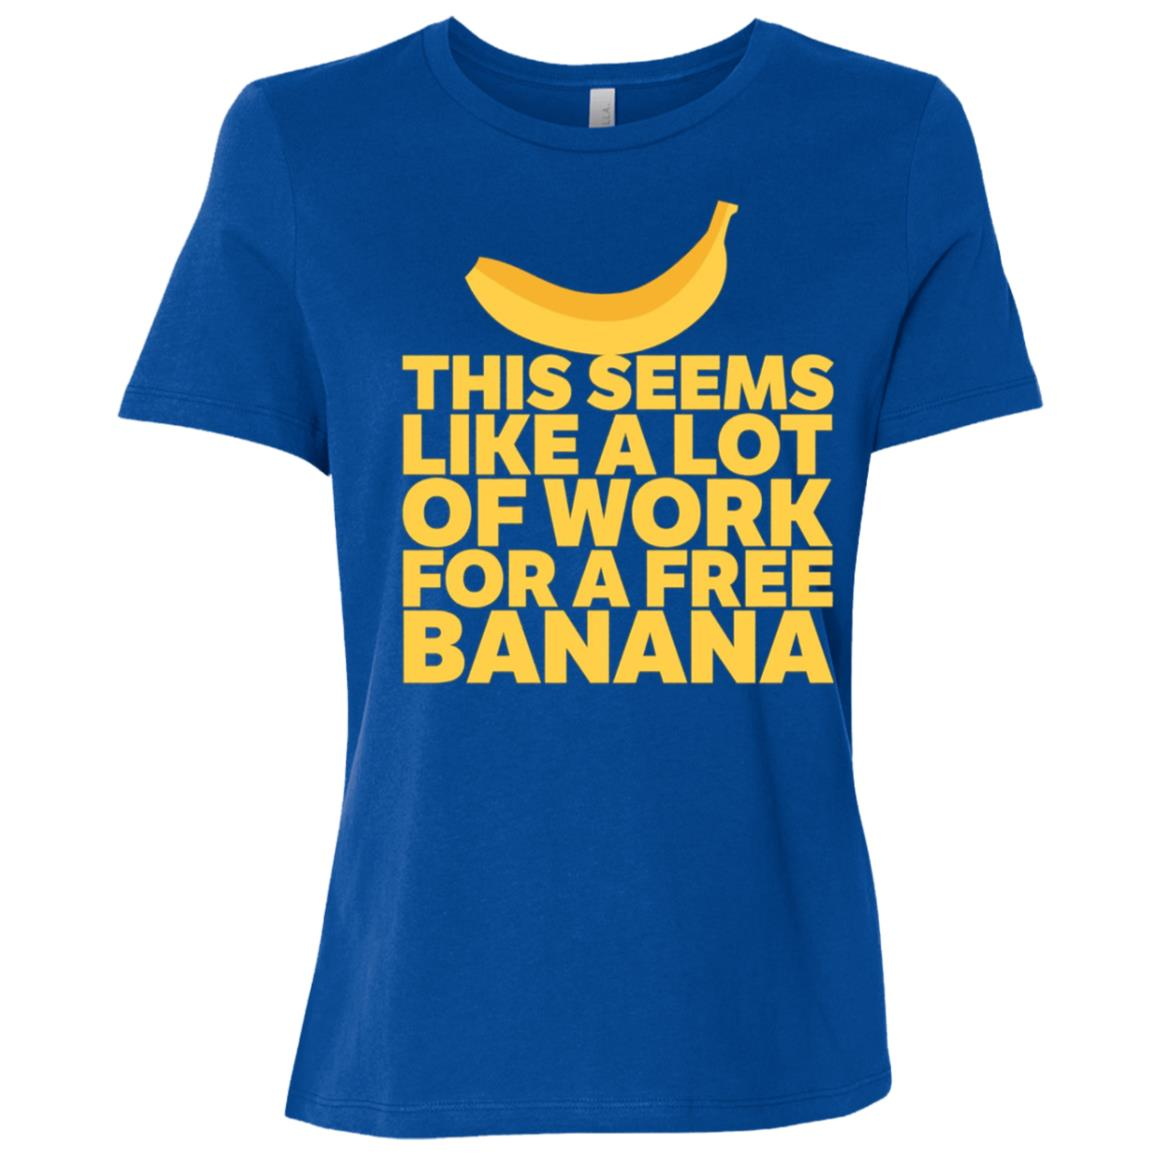 A Lot Of Work For A Free Banana Funny Running Women Short Sleeve T-Shirt